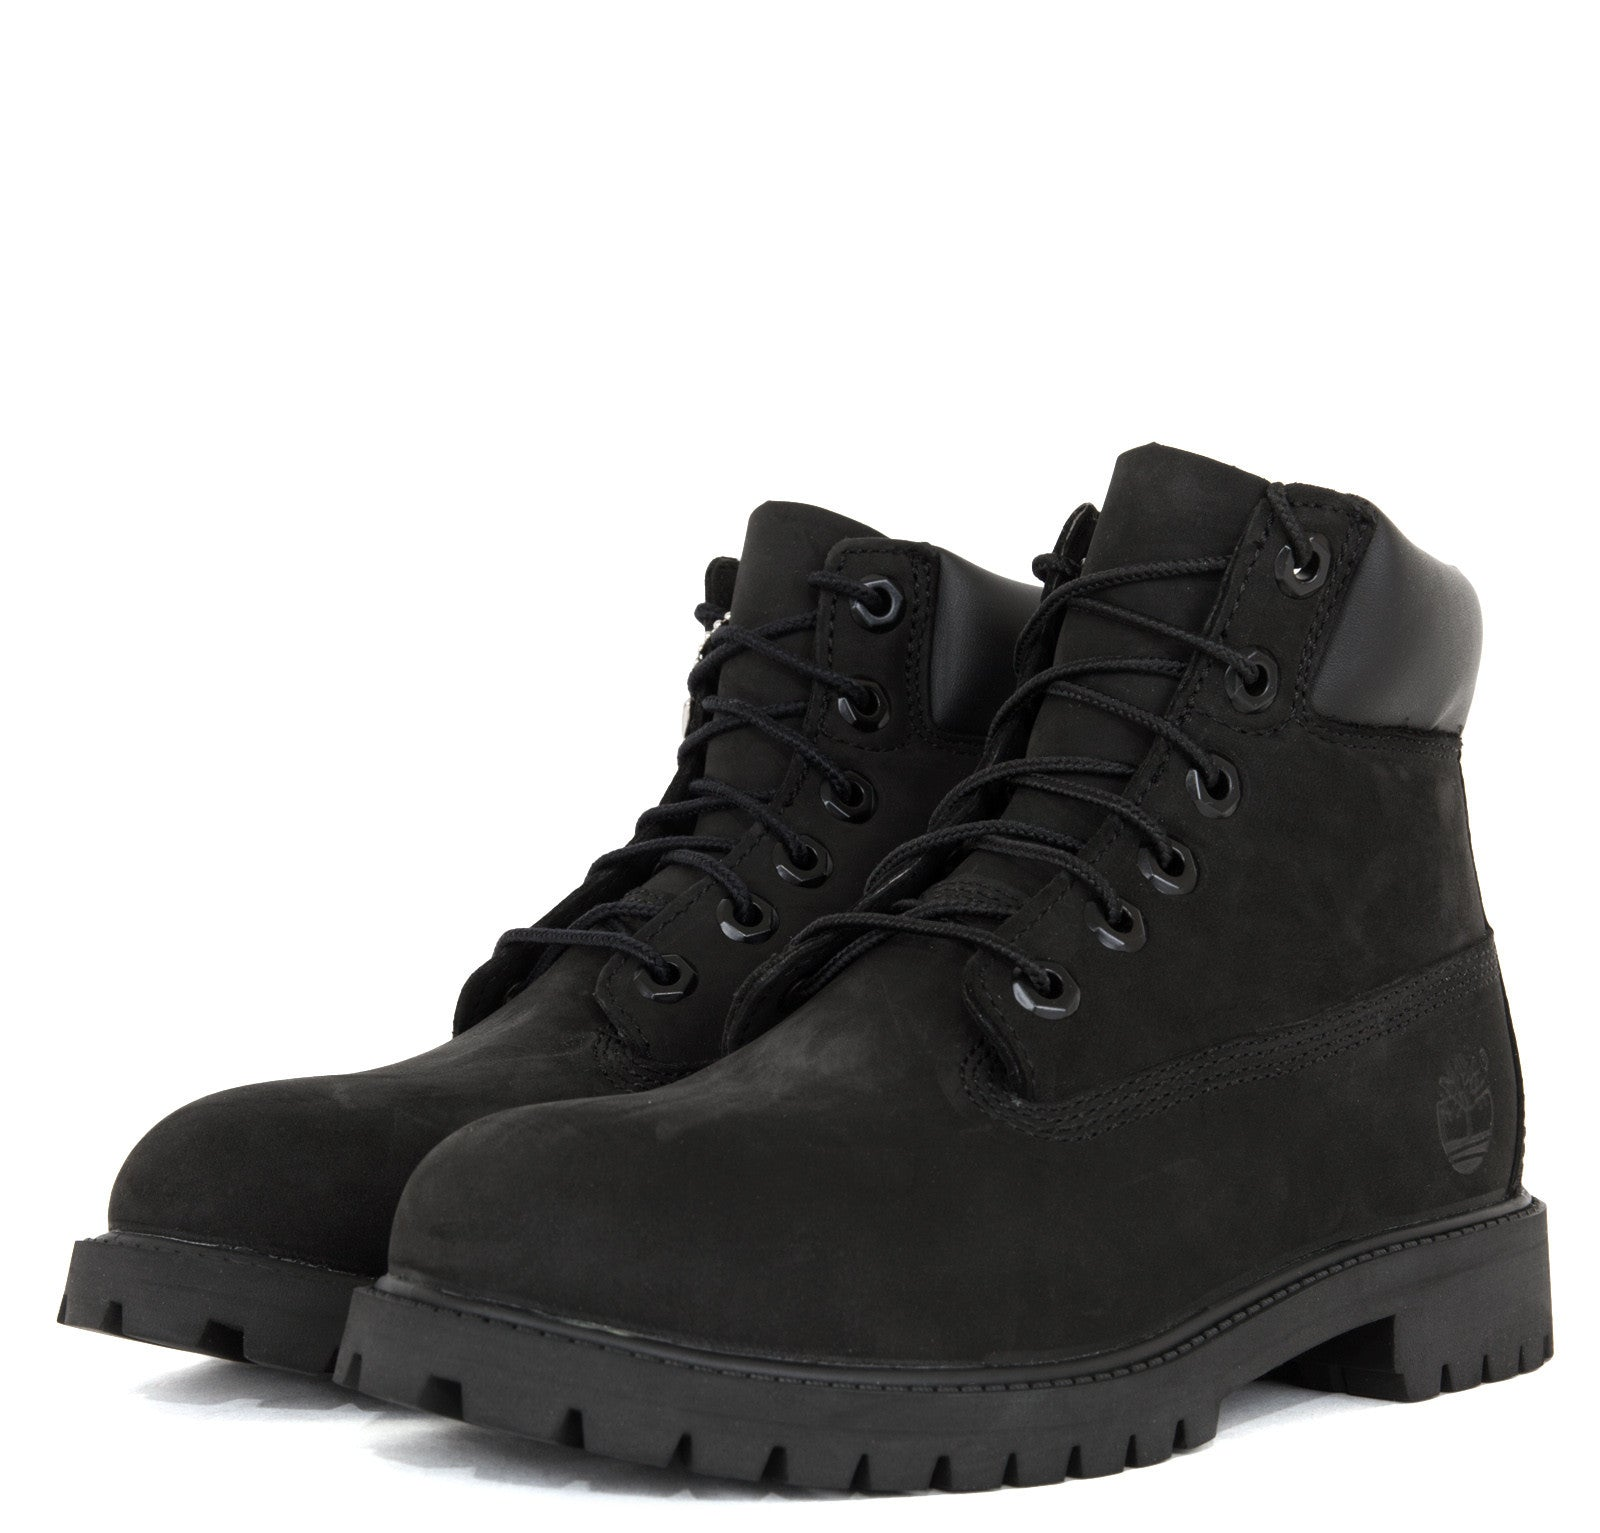 Timberland Junior 6-Inch Premium Waterproof Boots Black